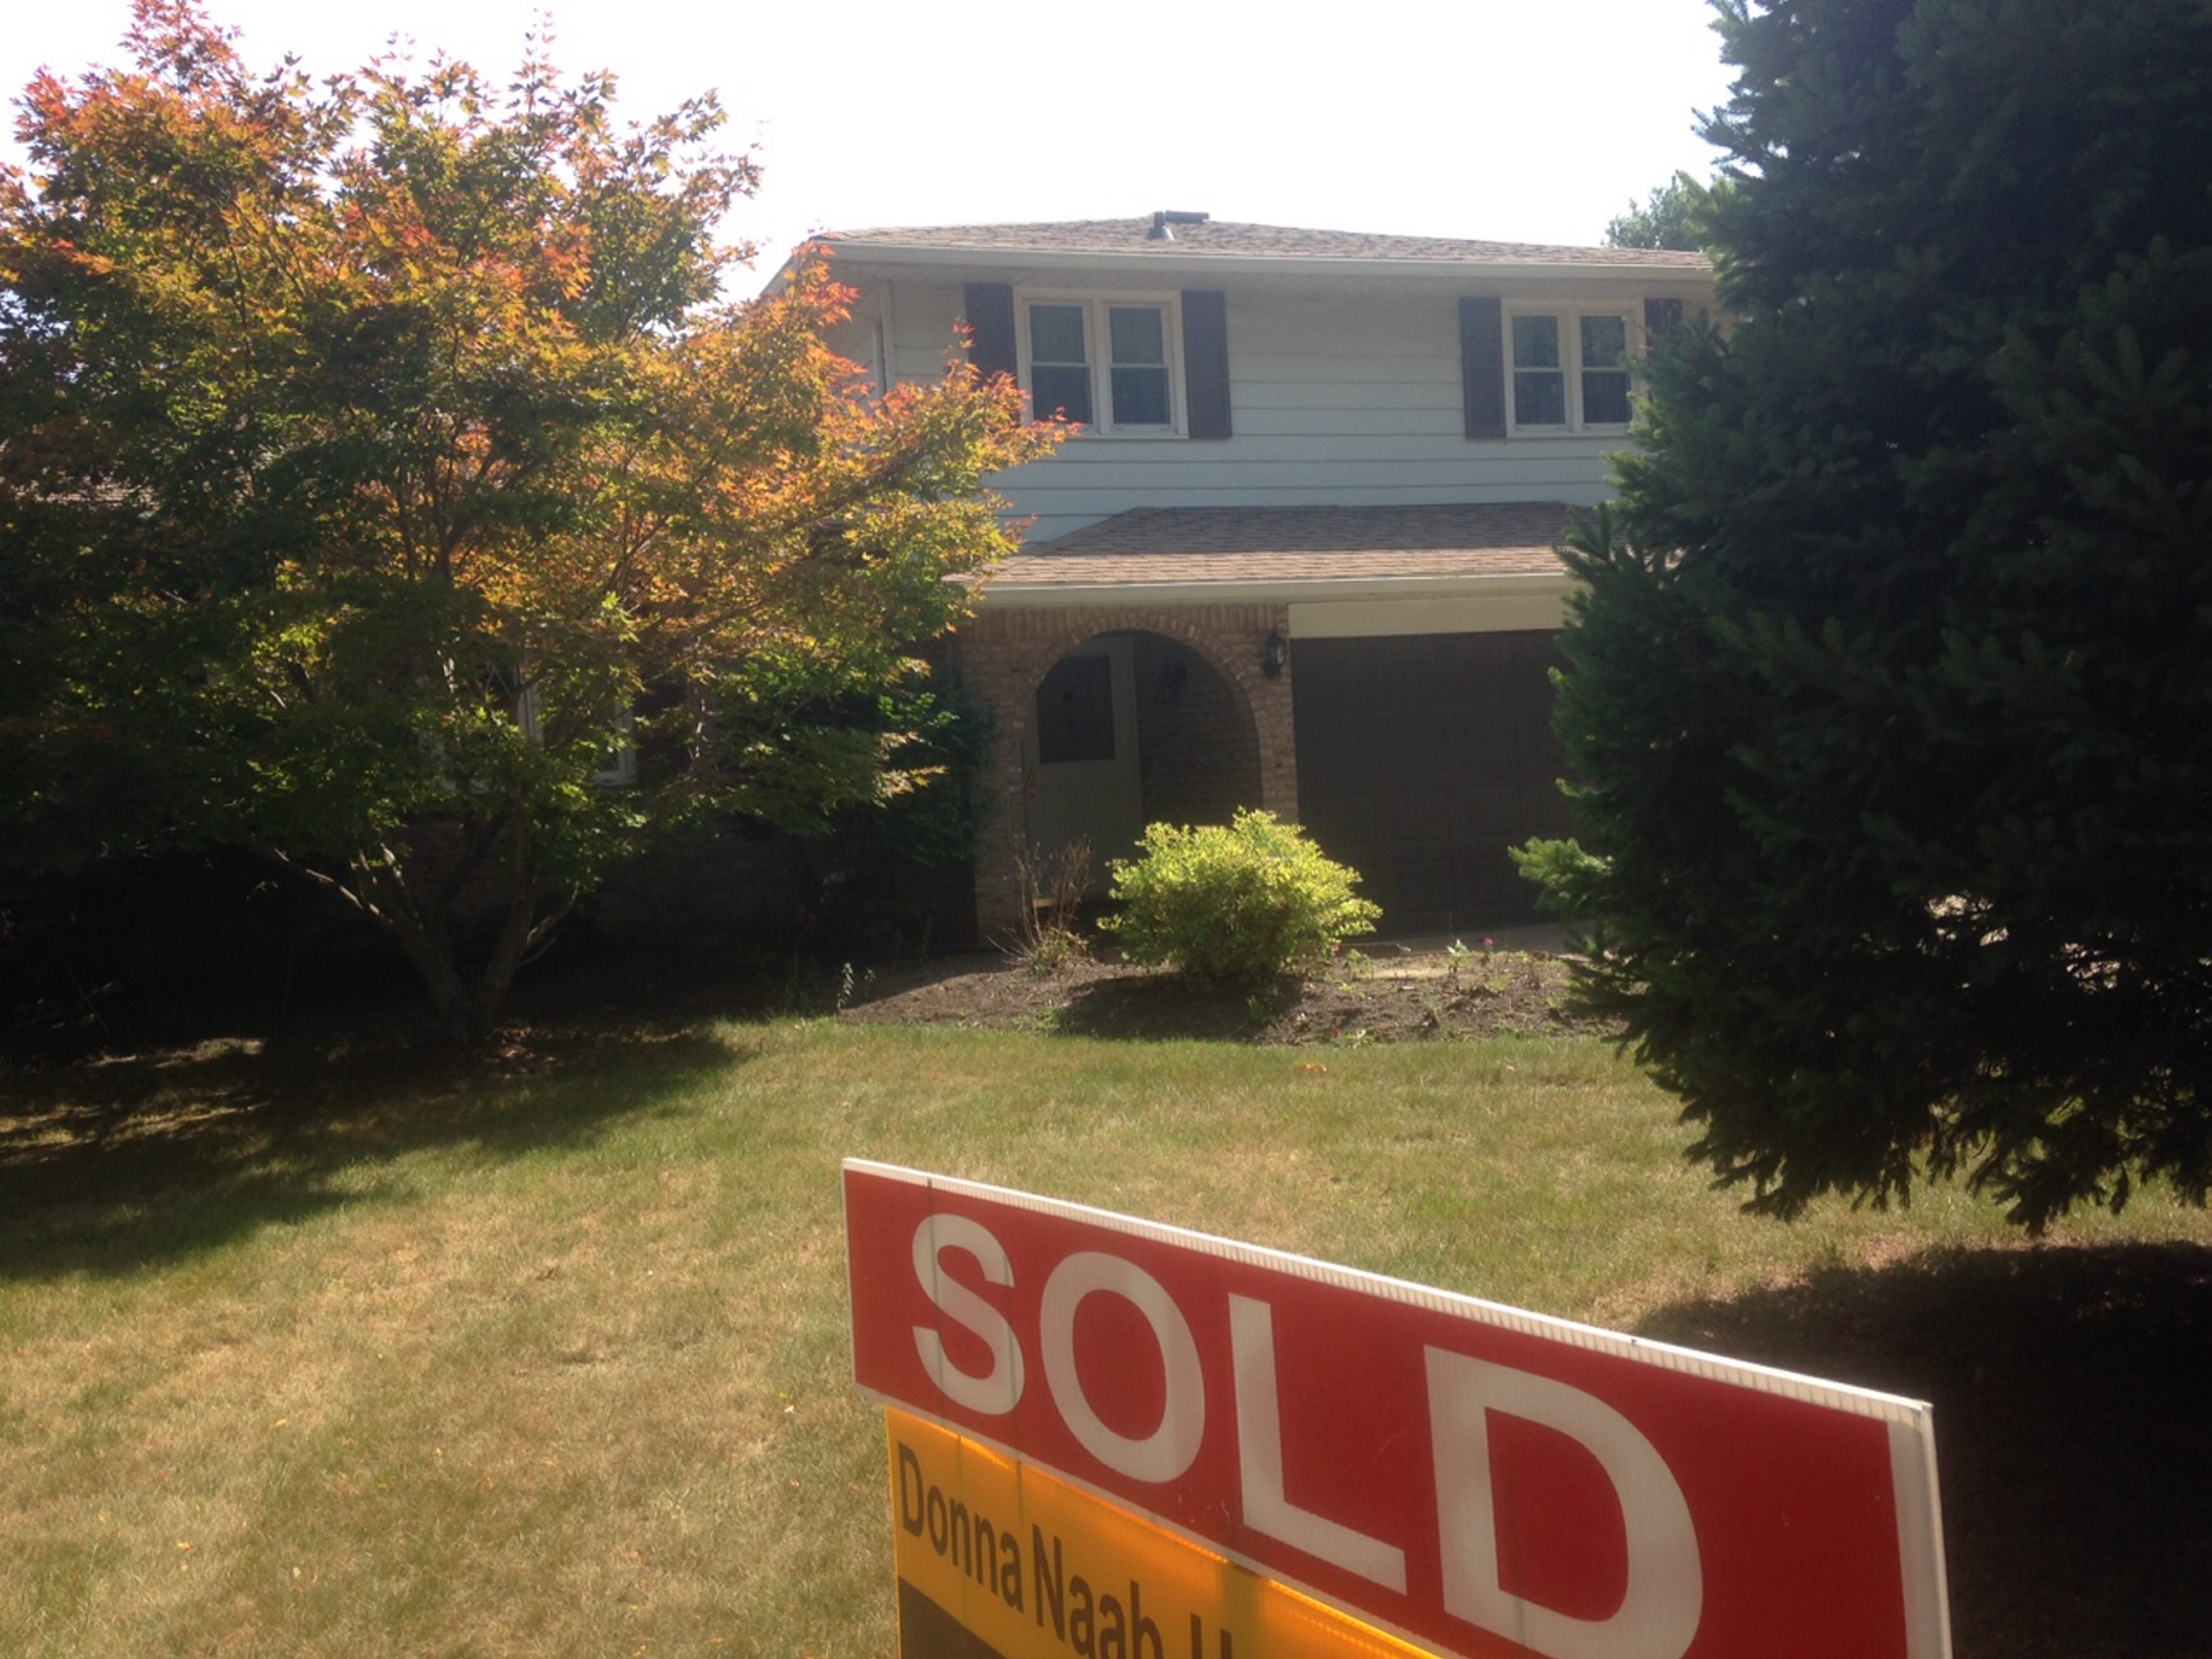 """A """"sold"""" sign in front of a home on Vine Lane in Amherst. (John Hickey/Buffalo News)"""